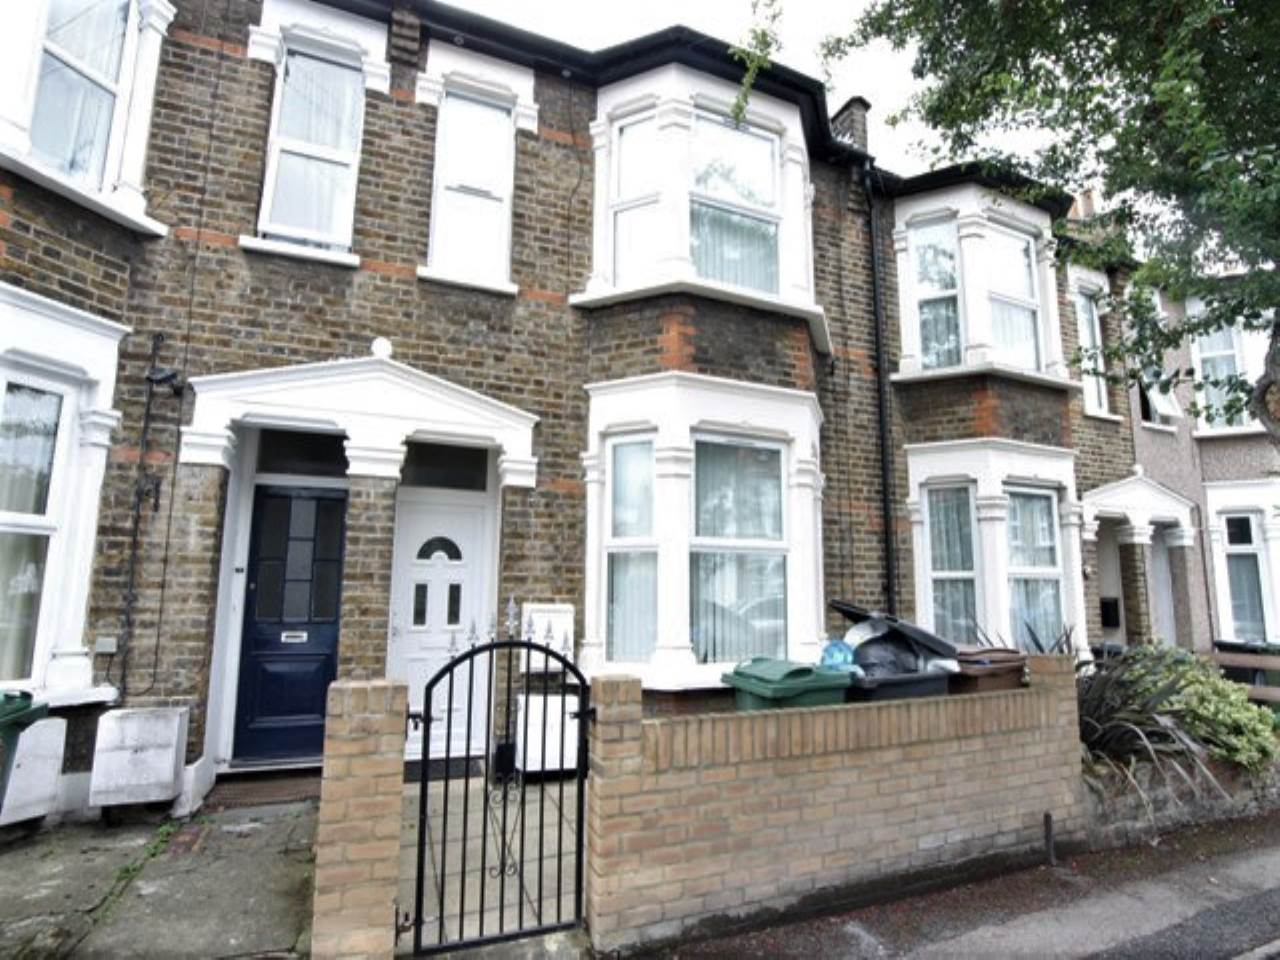 1 bed flat to rent in Livingstone Road, Walthamstow, E17